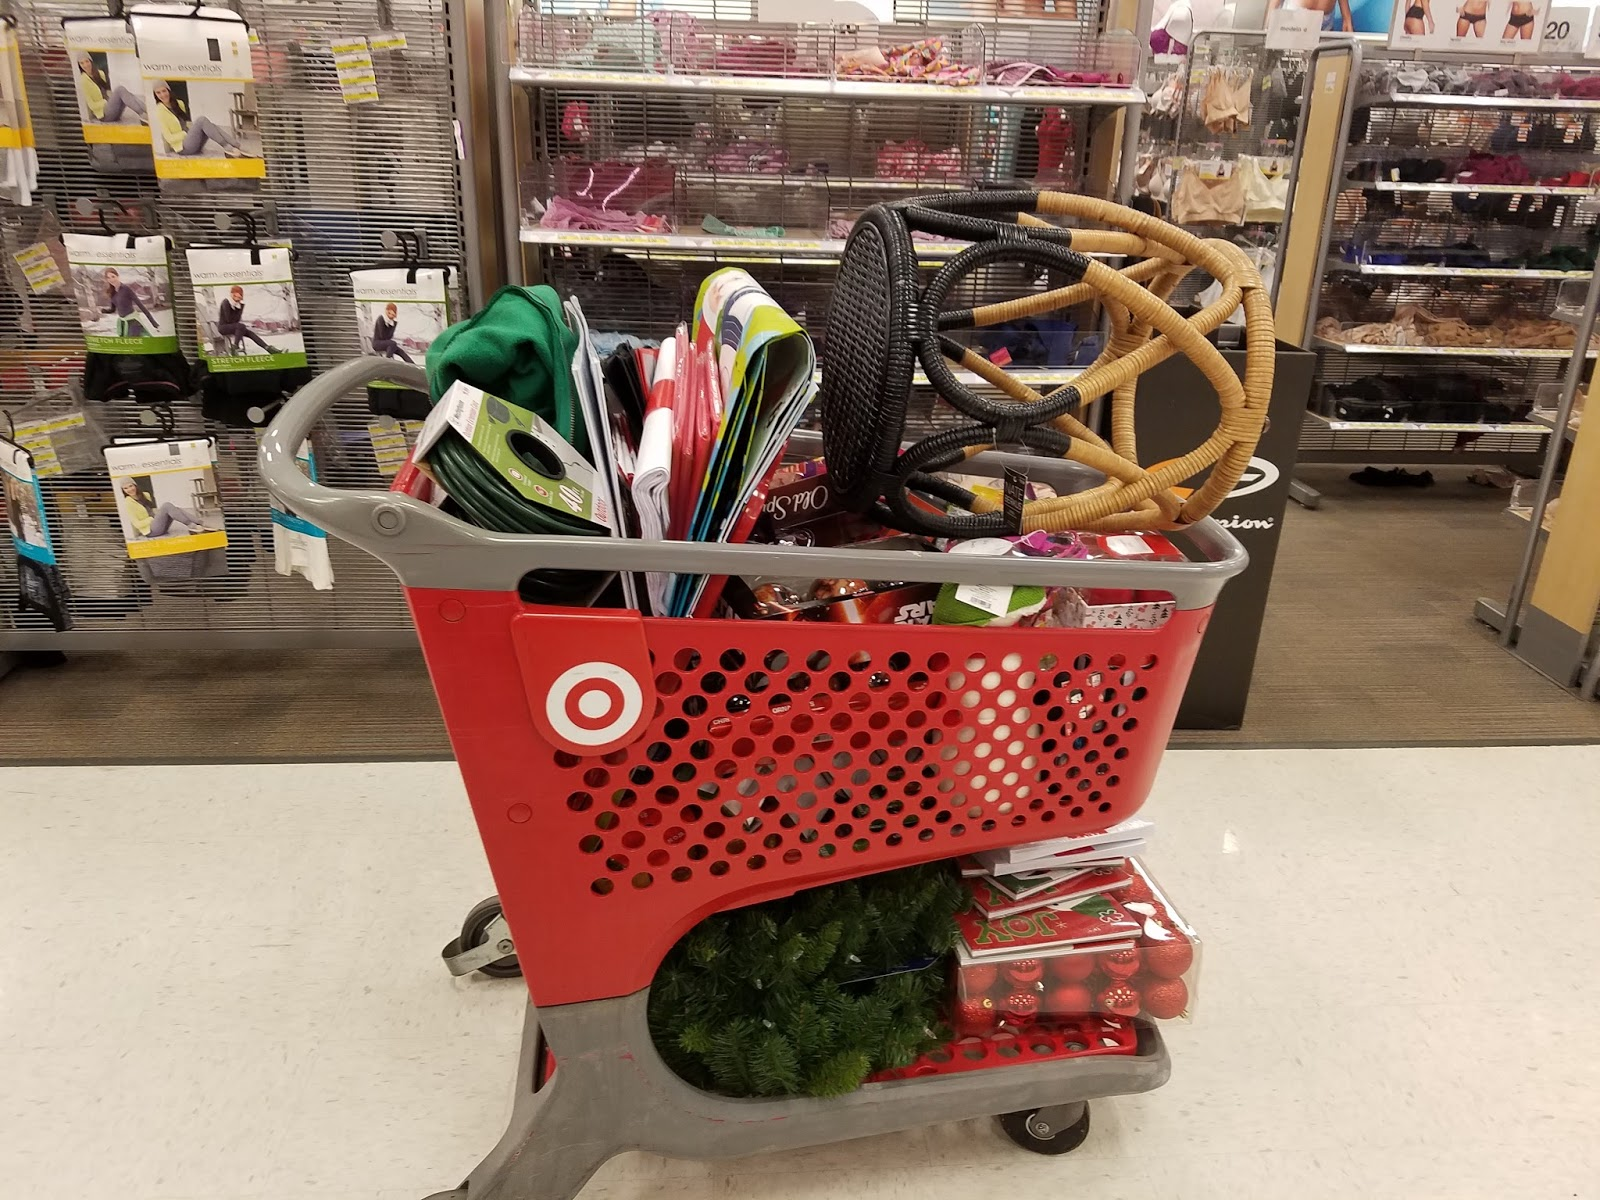 90 target christmas clearance saved 70990 - Target Christmas Clearance Schedule